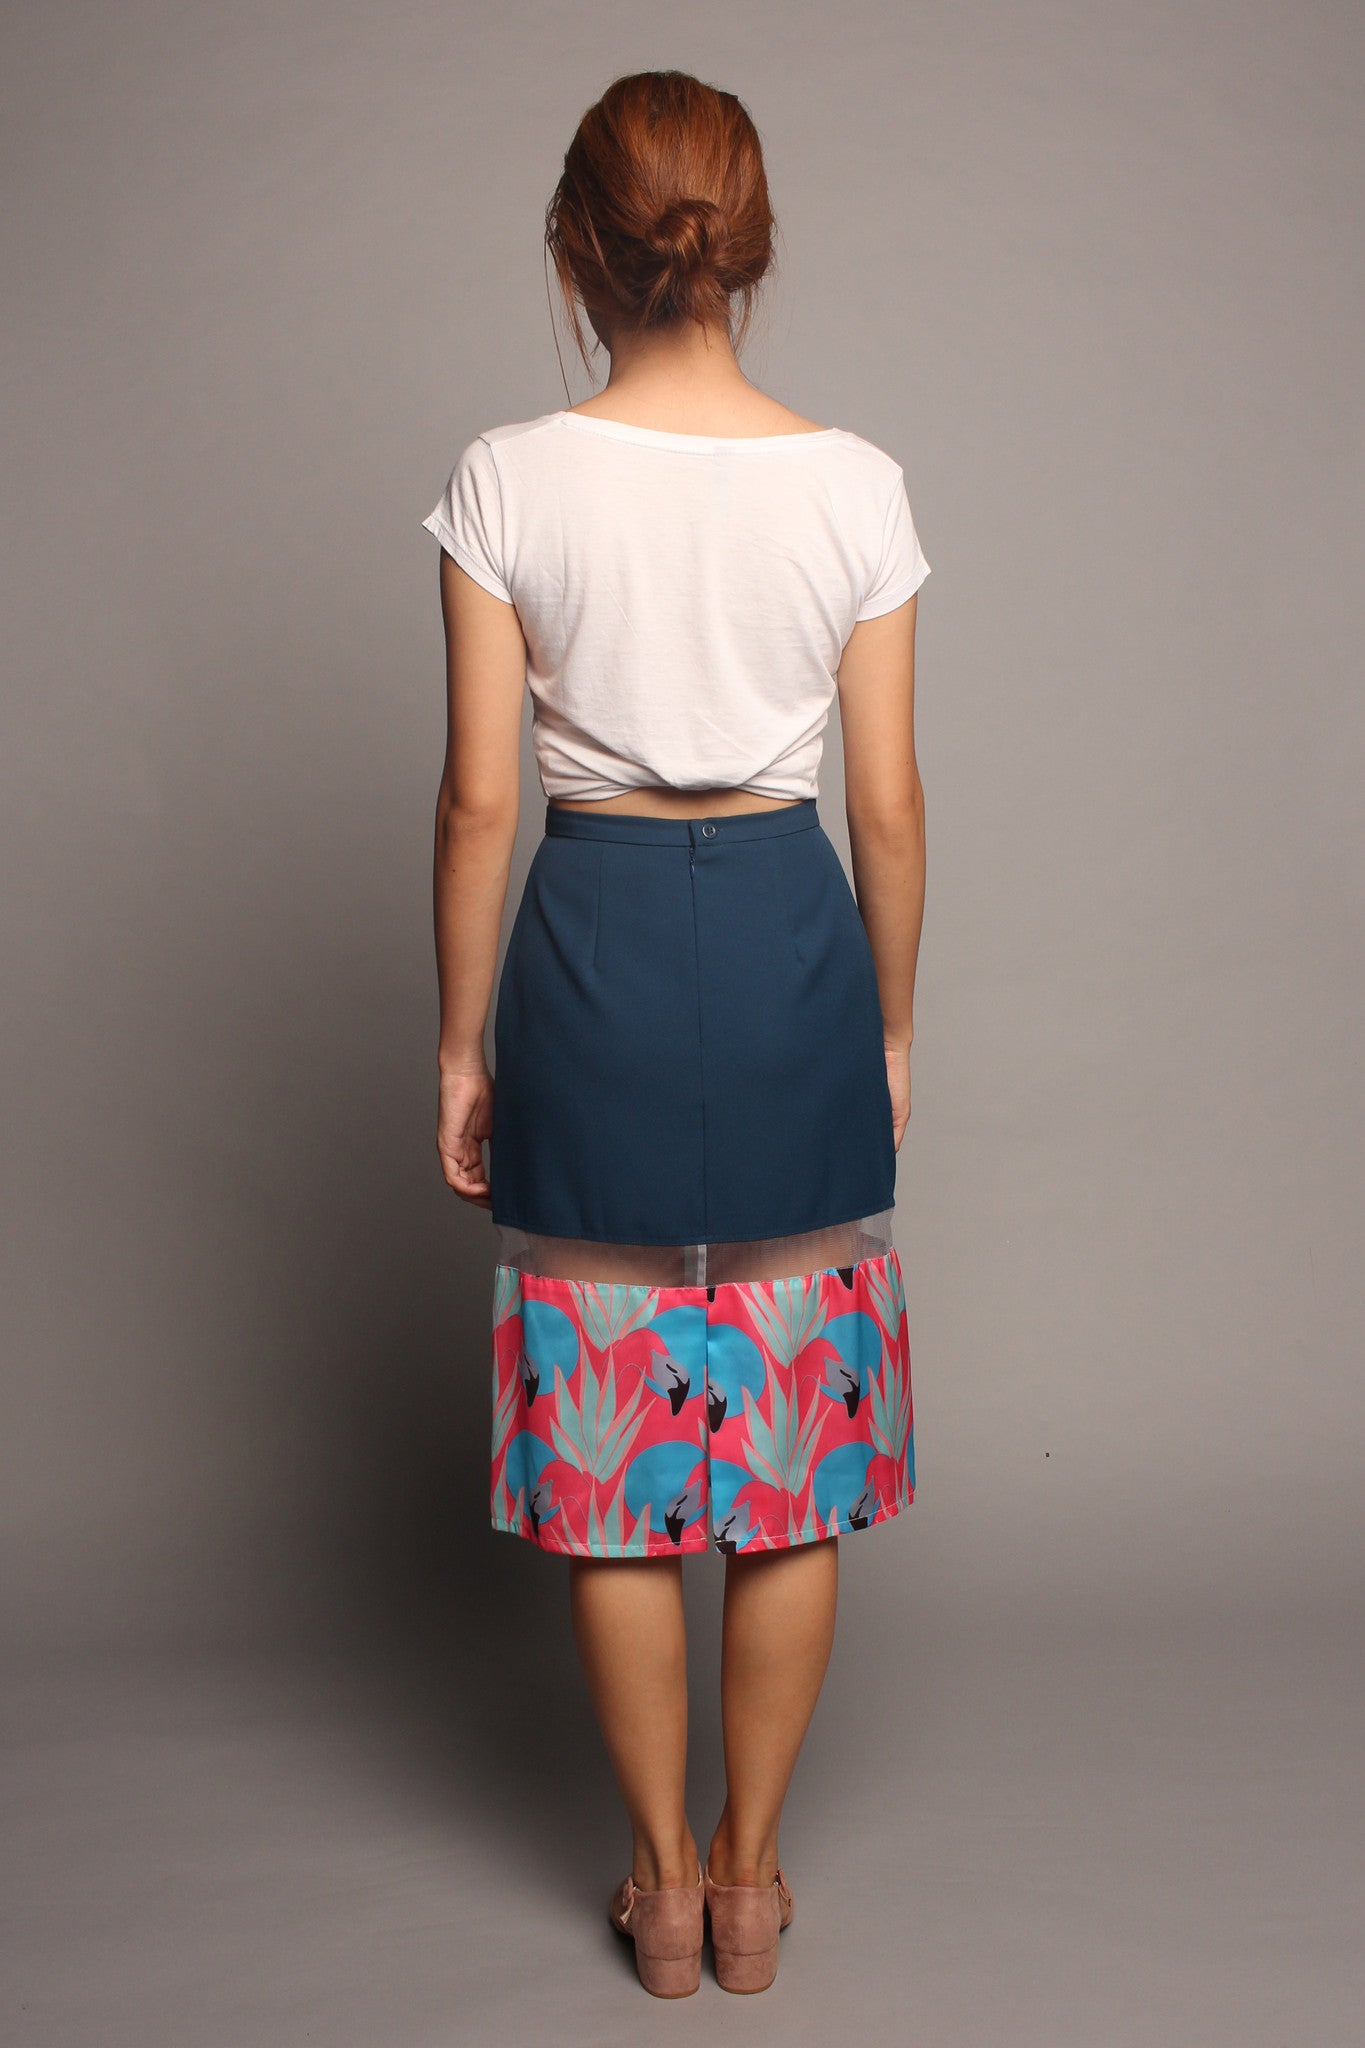 Flamingo Peekaboo Skirt - Dark Teal